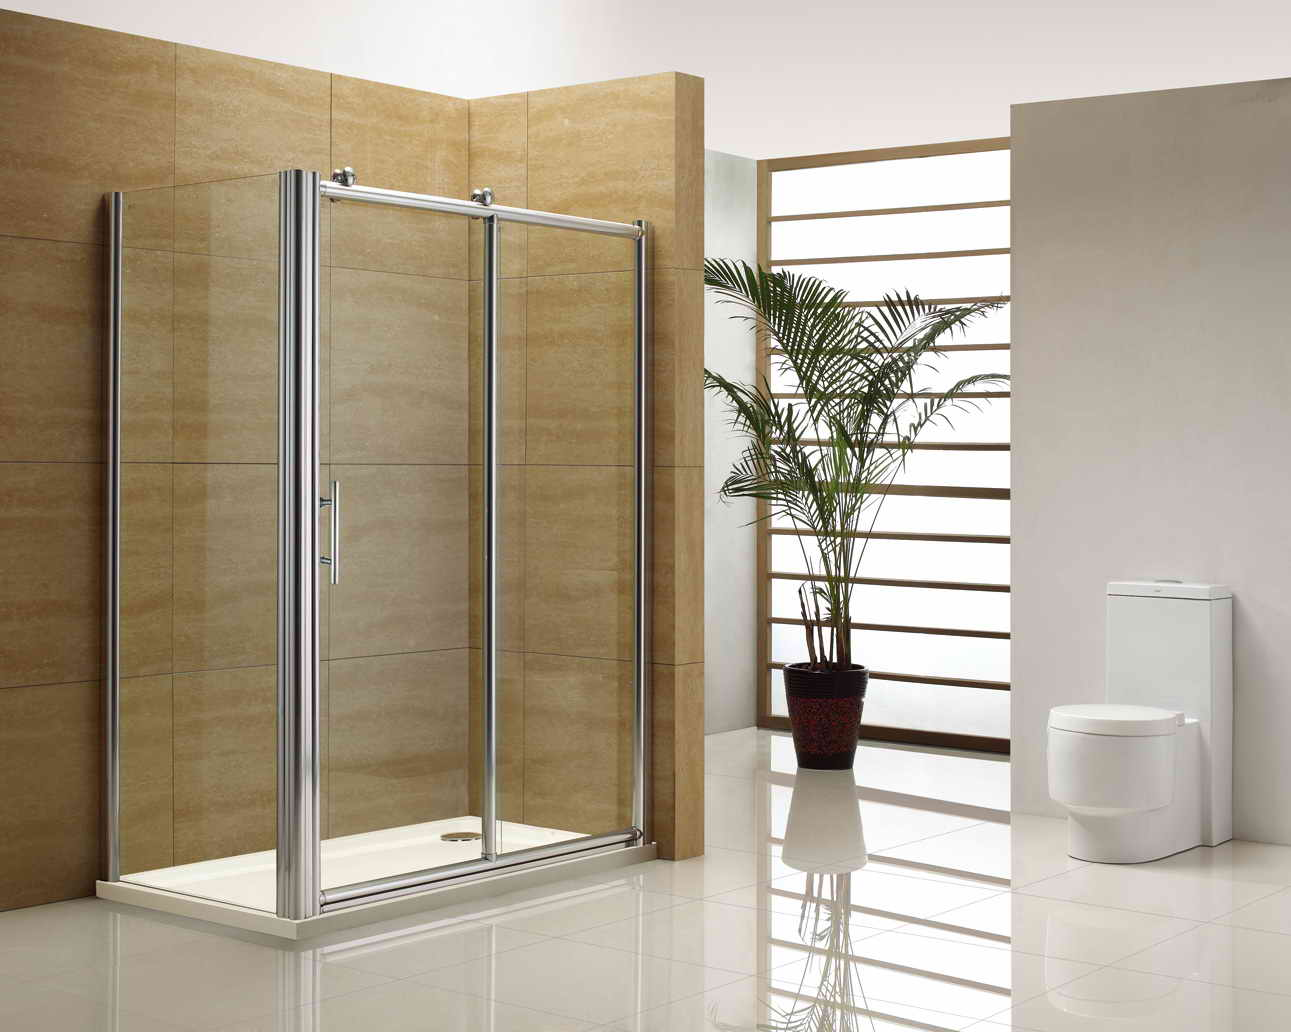 Image of: Handicap Walk In Shower Designs